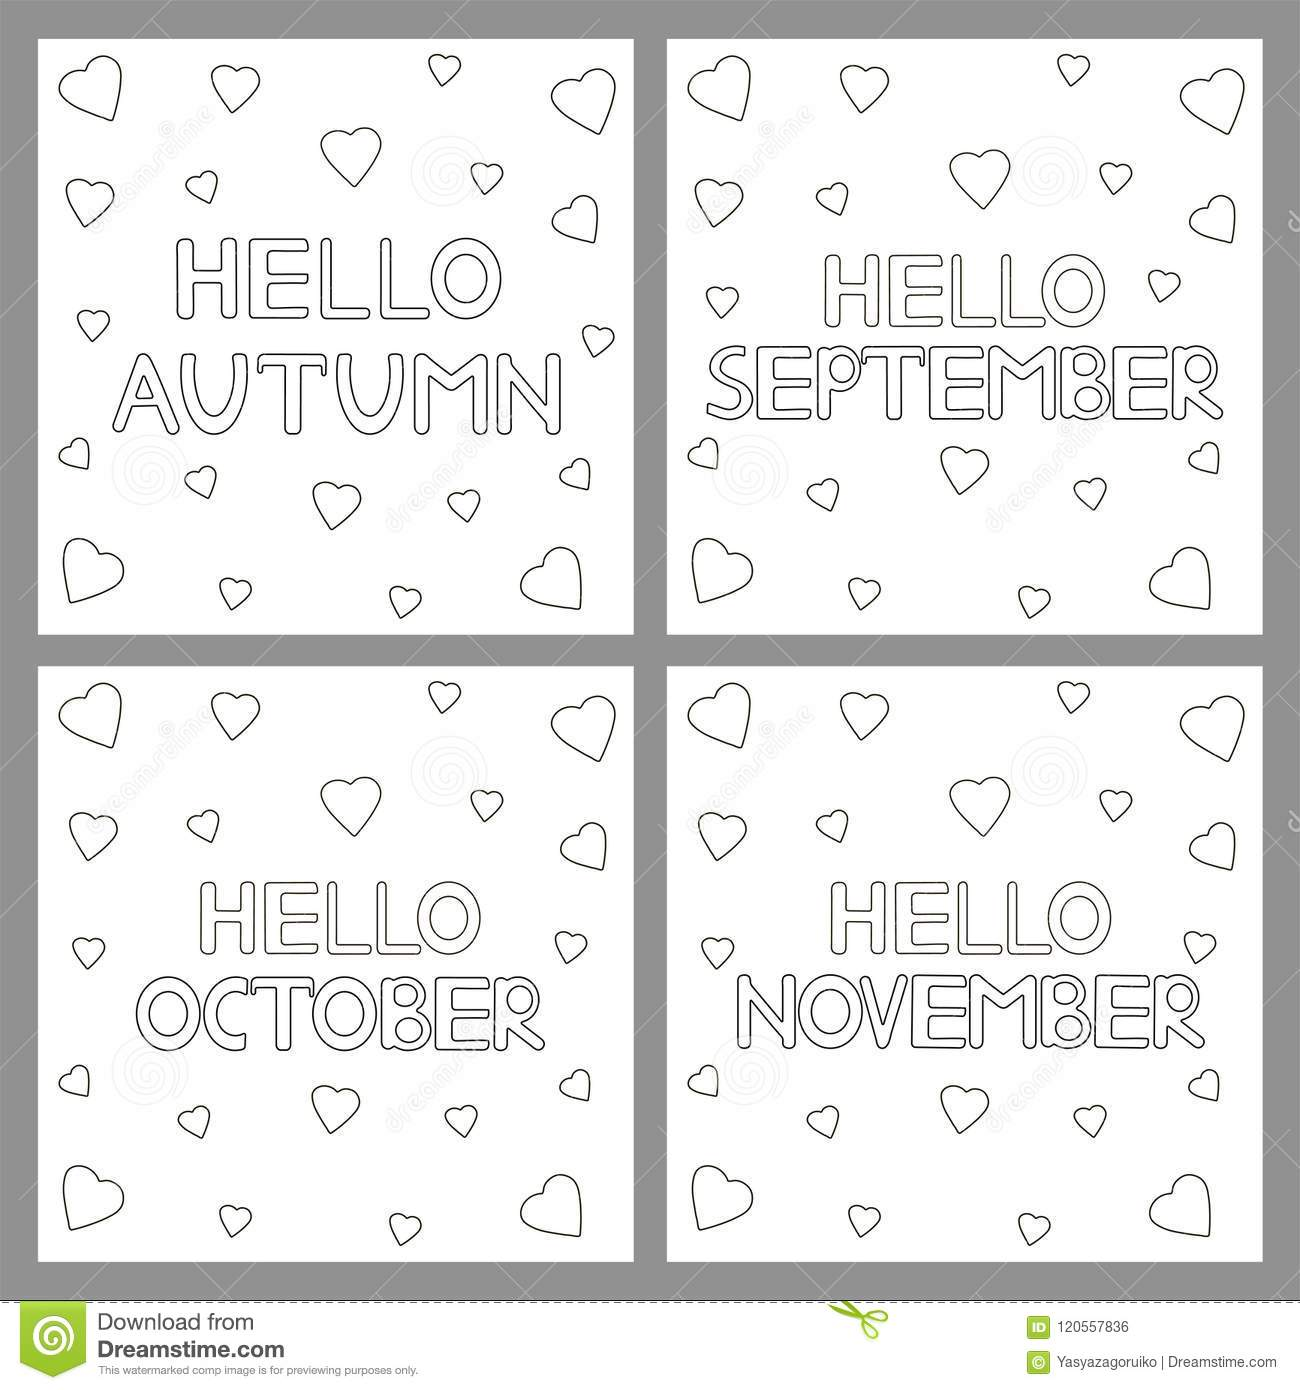 Coloring Pages Set With Phrases Hello Autumn Hello September H Stock Vector Illustration Of Card Heart 120557836